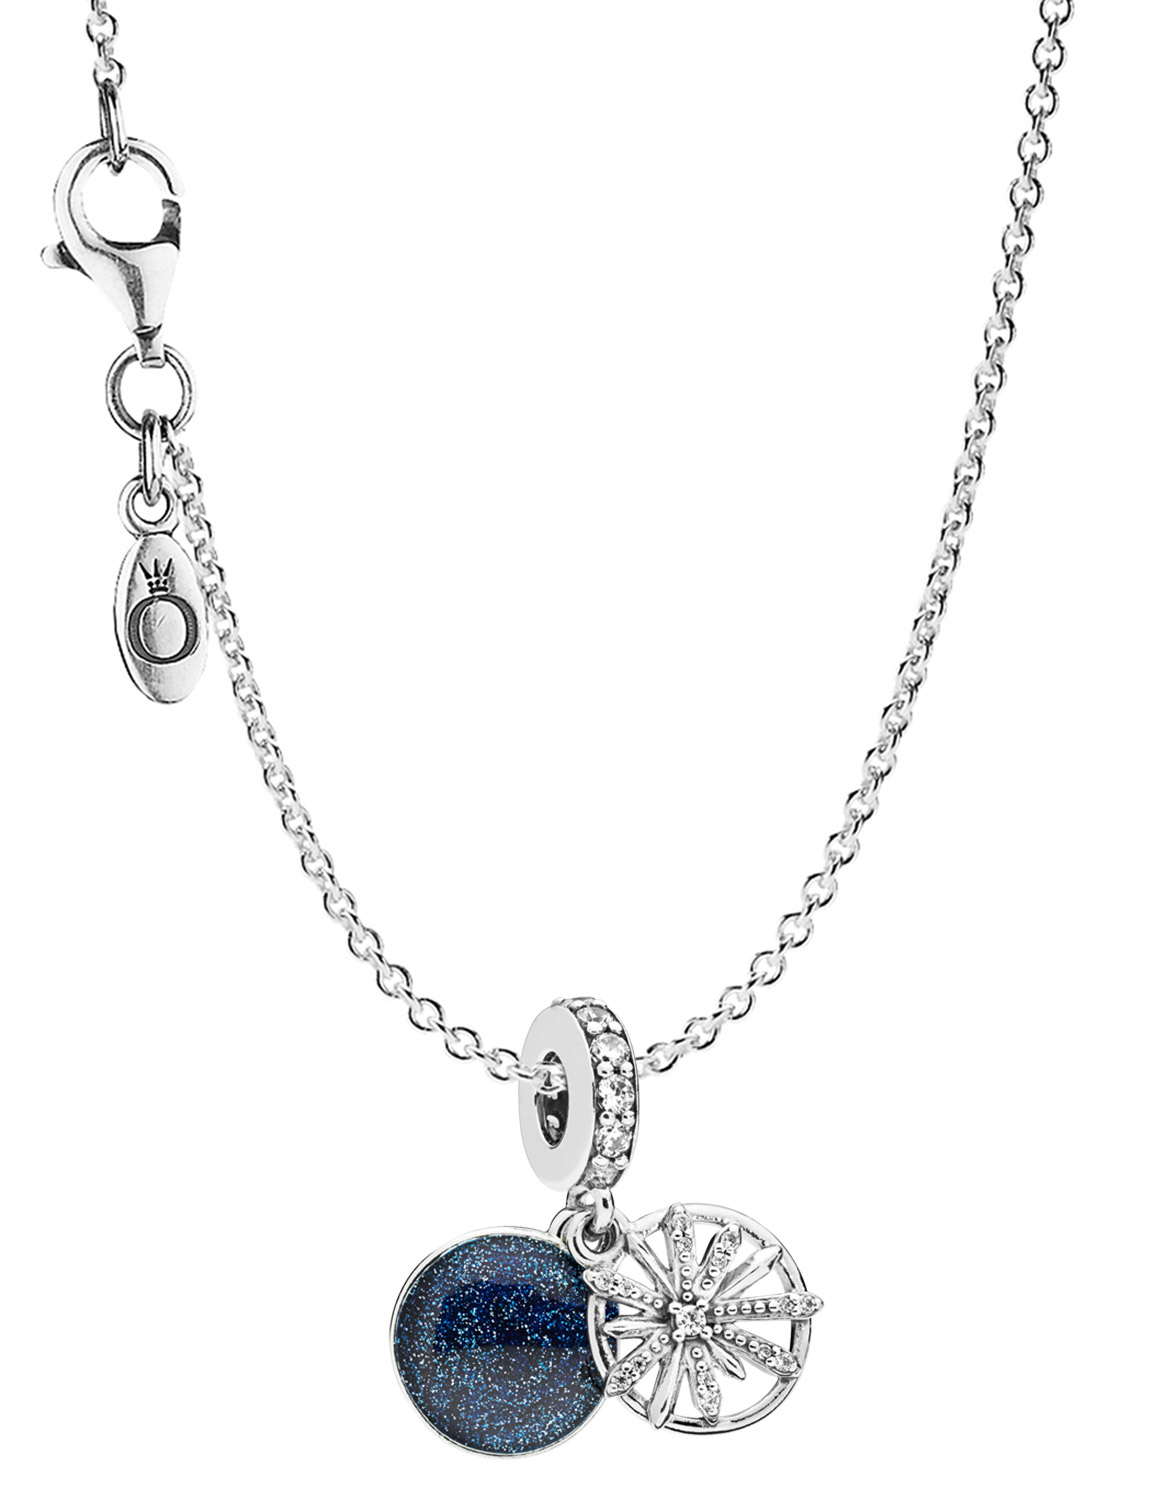 64daa2aaa PANDORA Necklace with Charm Dazzling Wishes 08695